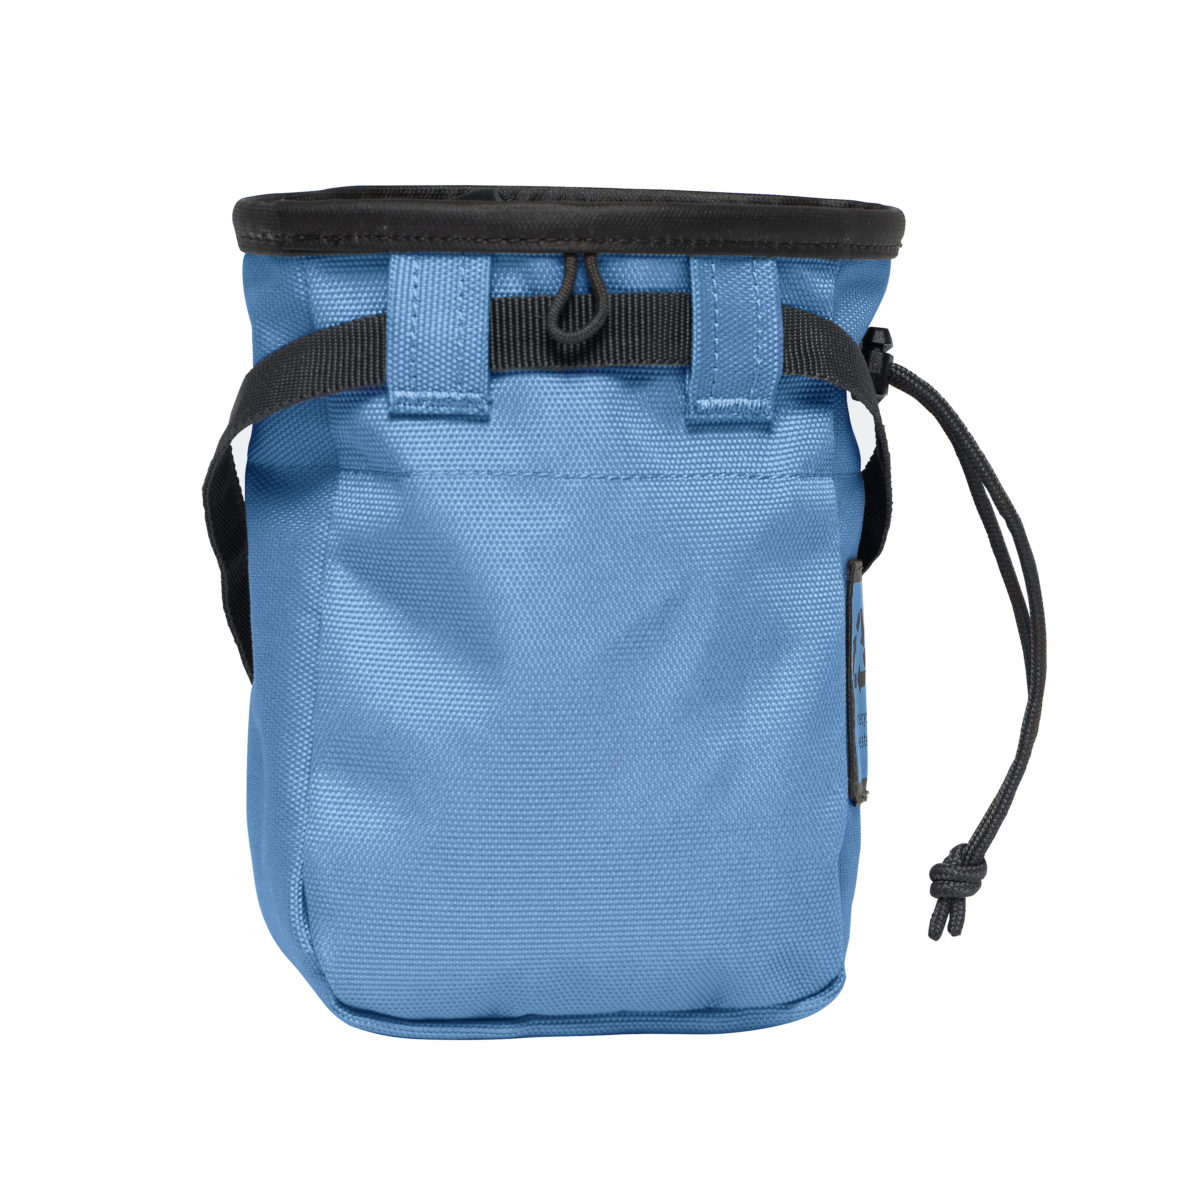 steel blue chalk bag with belt included